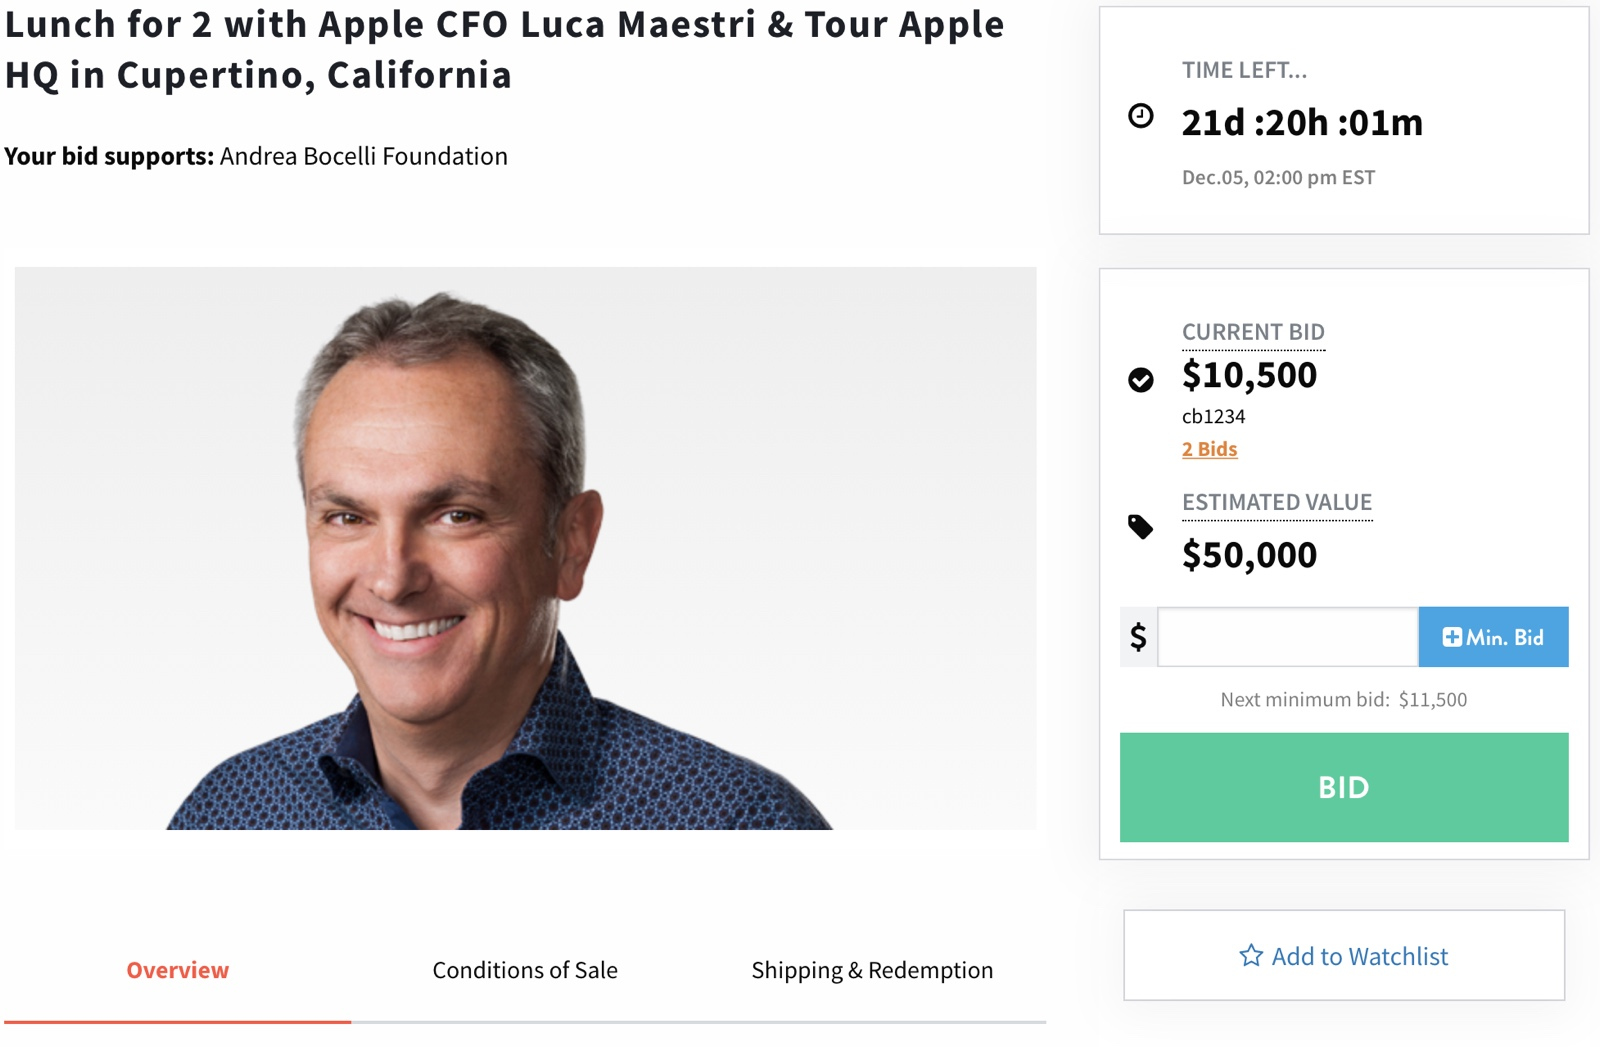 Apple CFO Luca Maestri Auctions Lunch and Apple HQ Tour for Charity